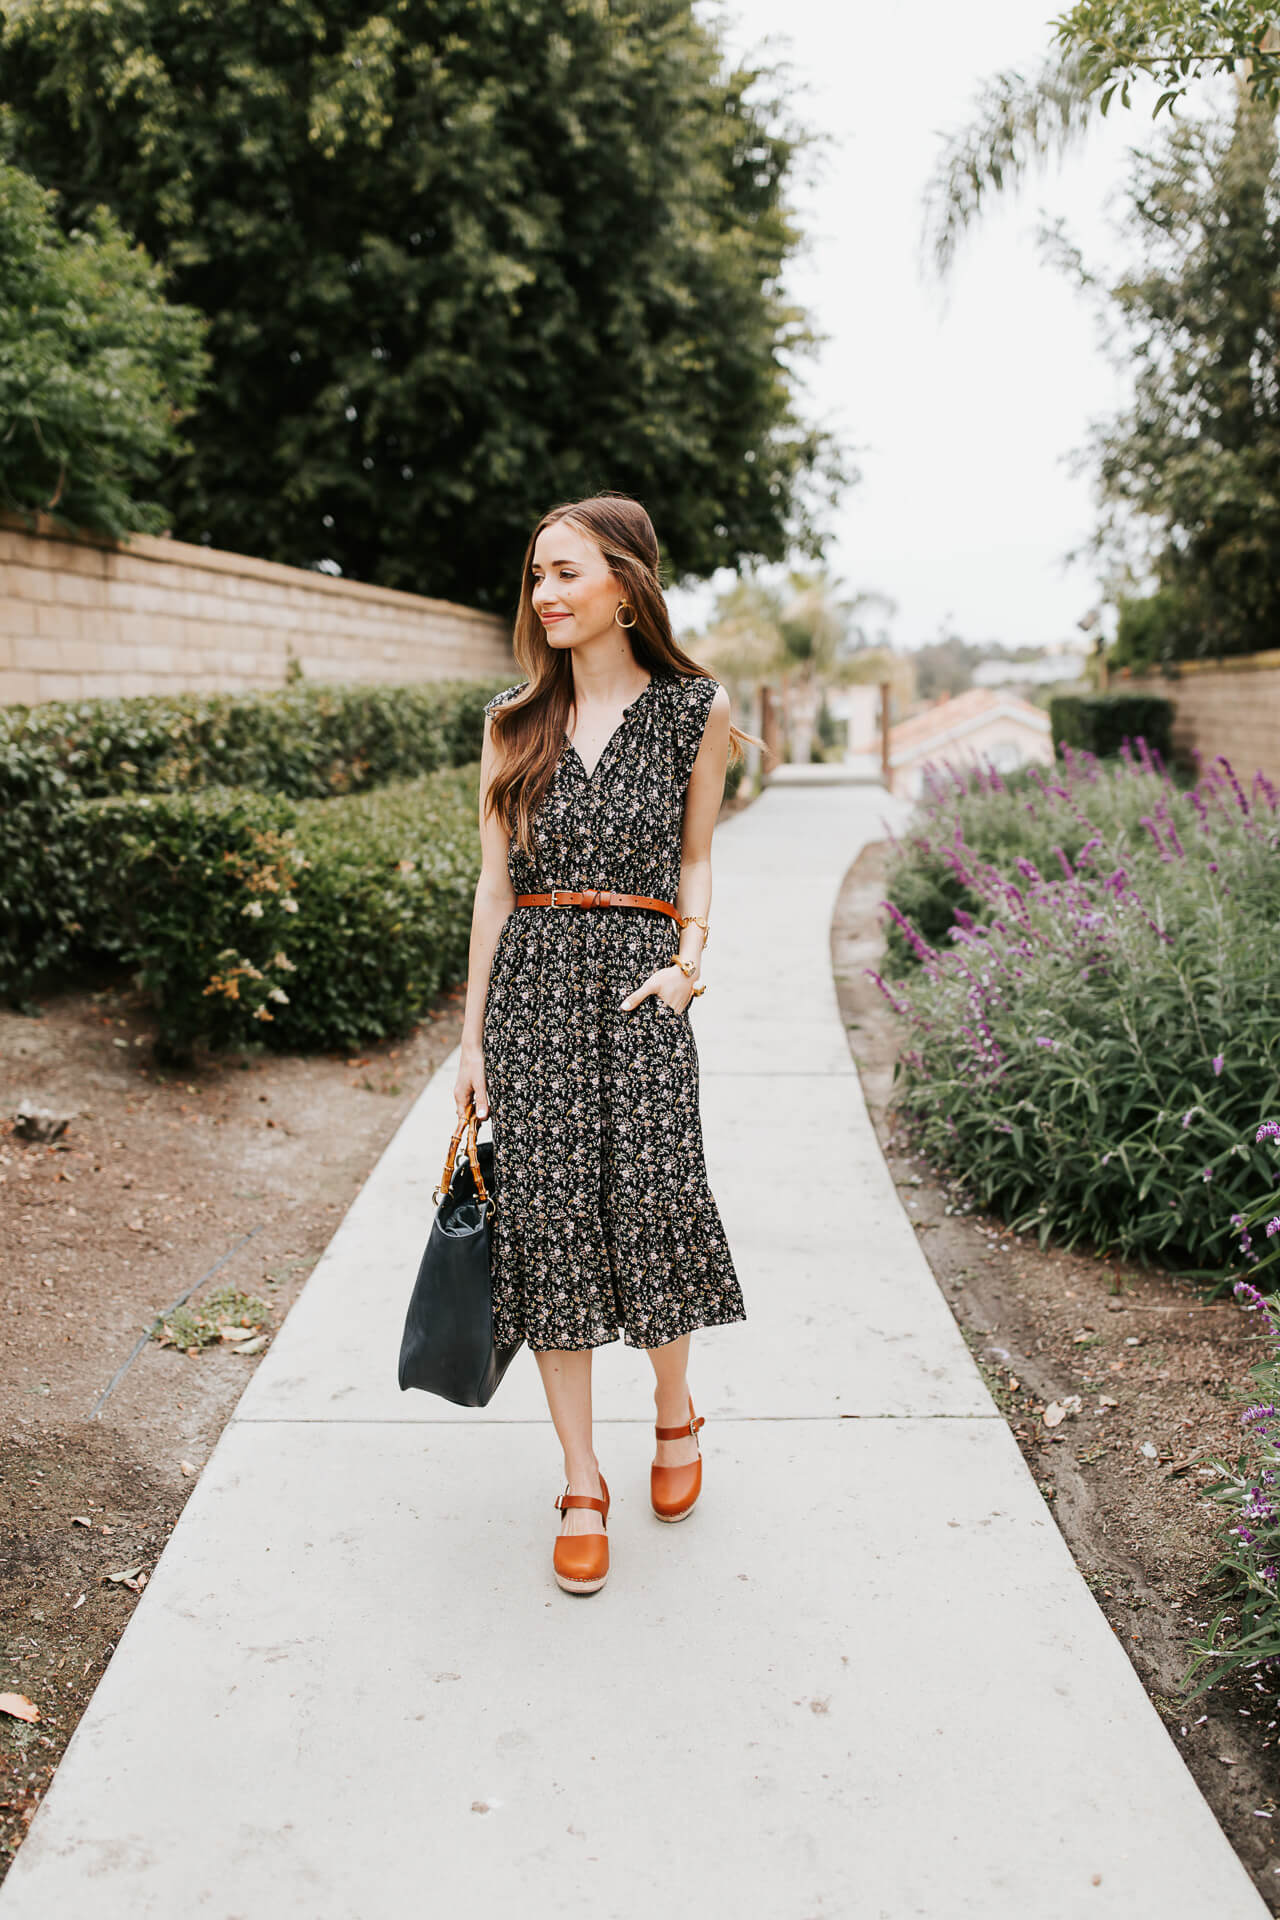 Floral sundresses are so pretty on warm summer days! | M Loves M @marmar